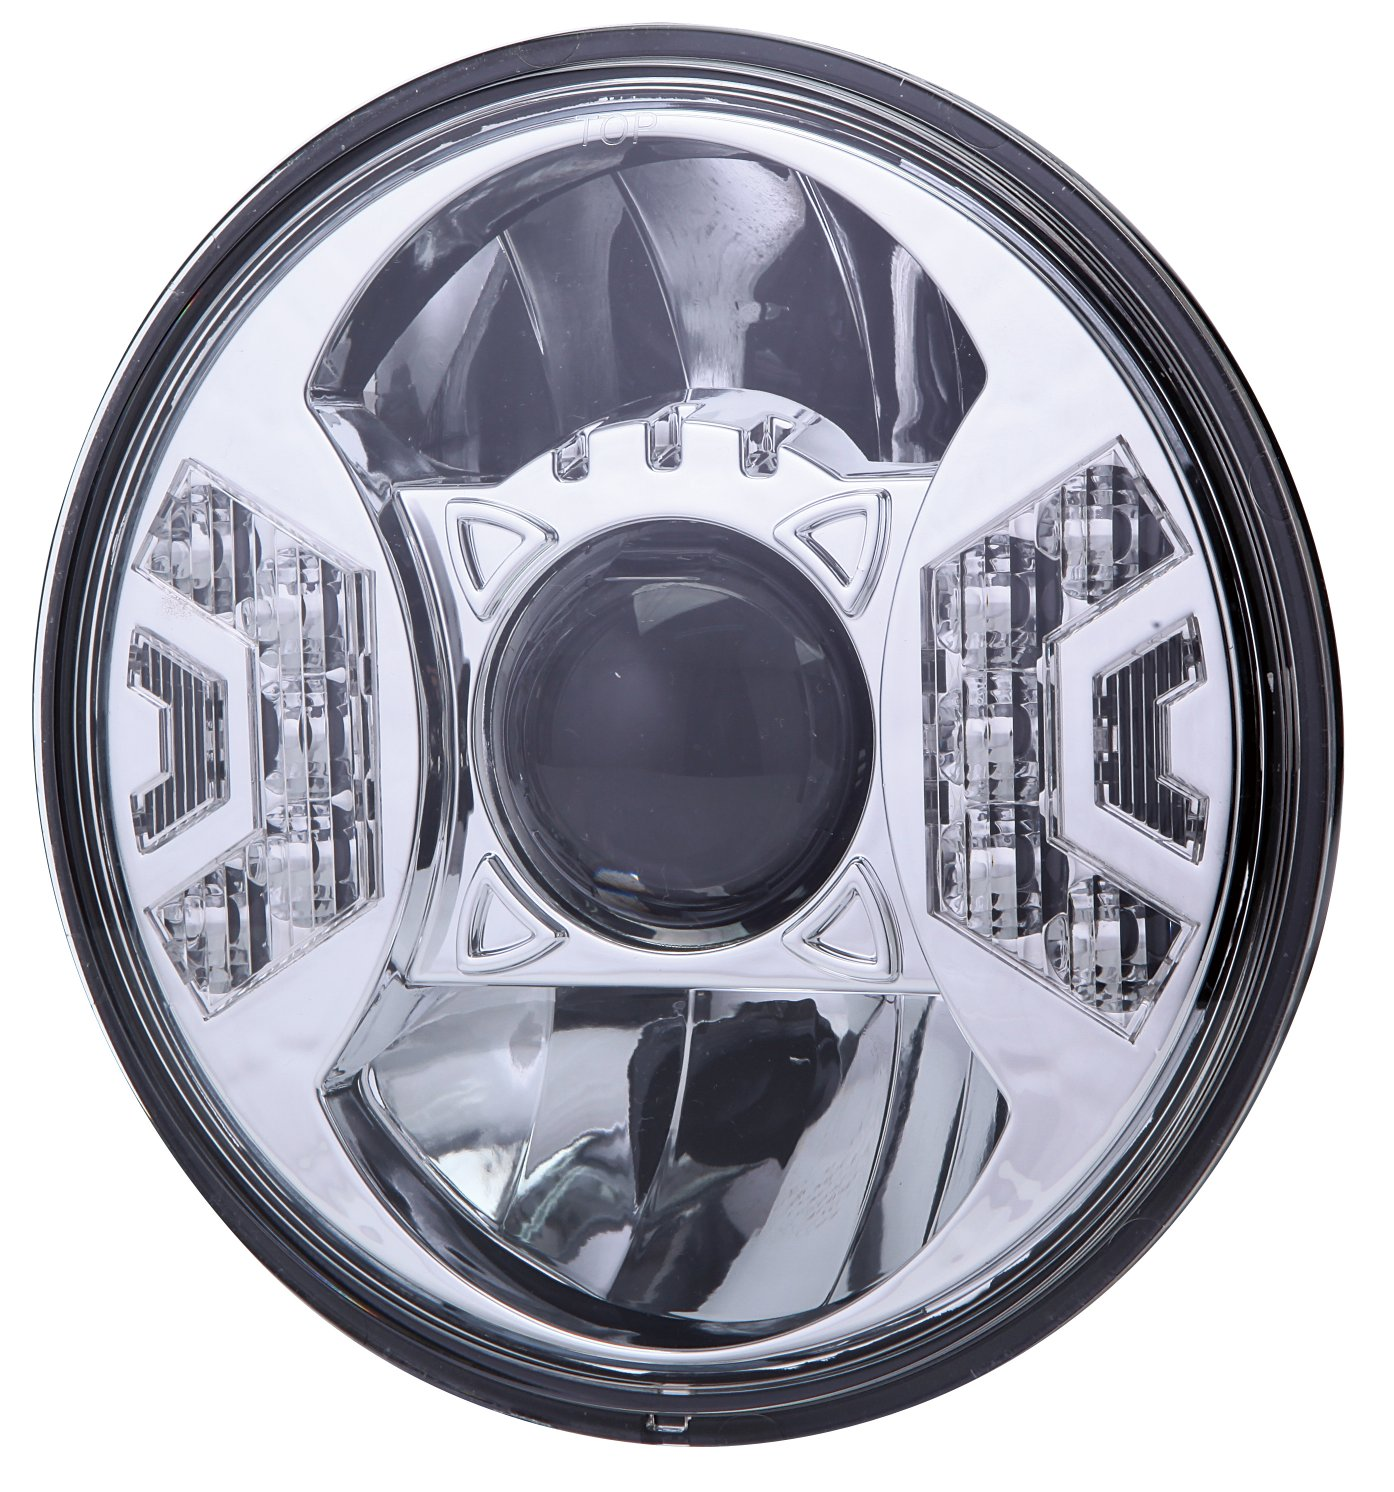 Automobile Headlights for Lighting Series made by Sirius Light Technology Co., LTD 南勝企業股份有限公司 - MatchSupplier.com